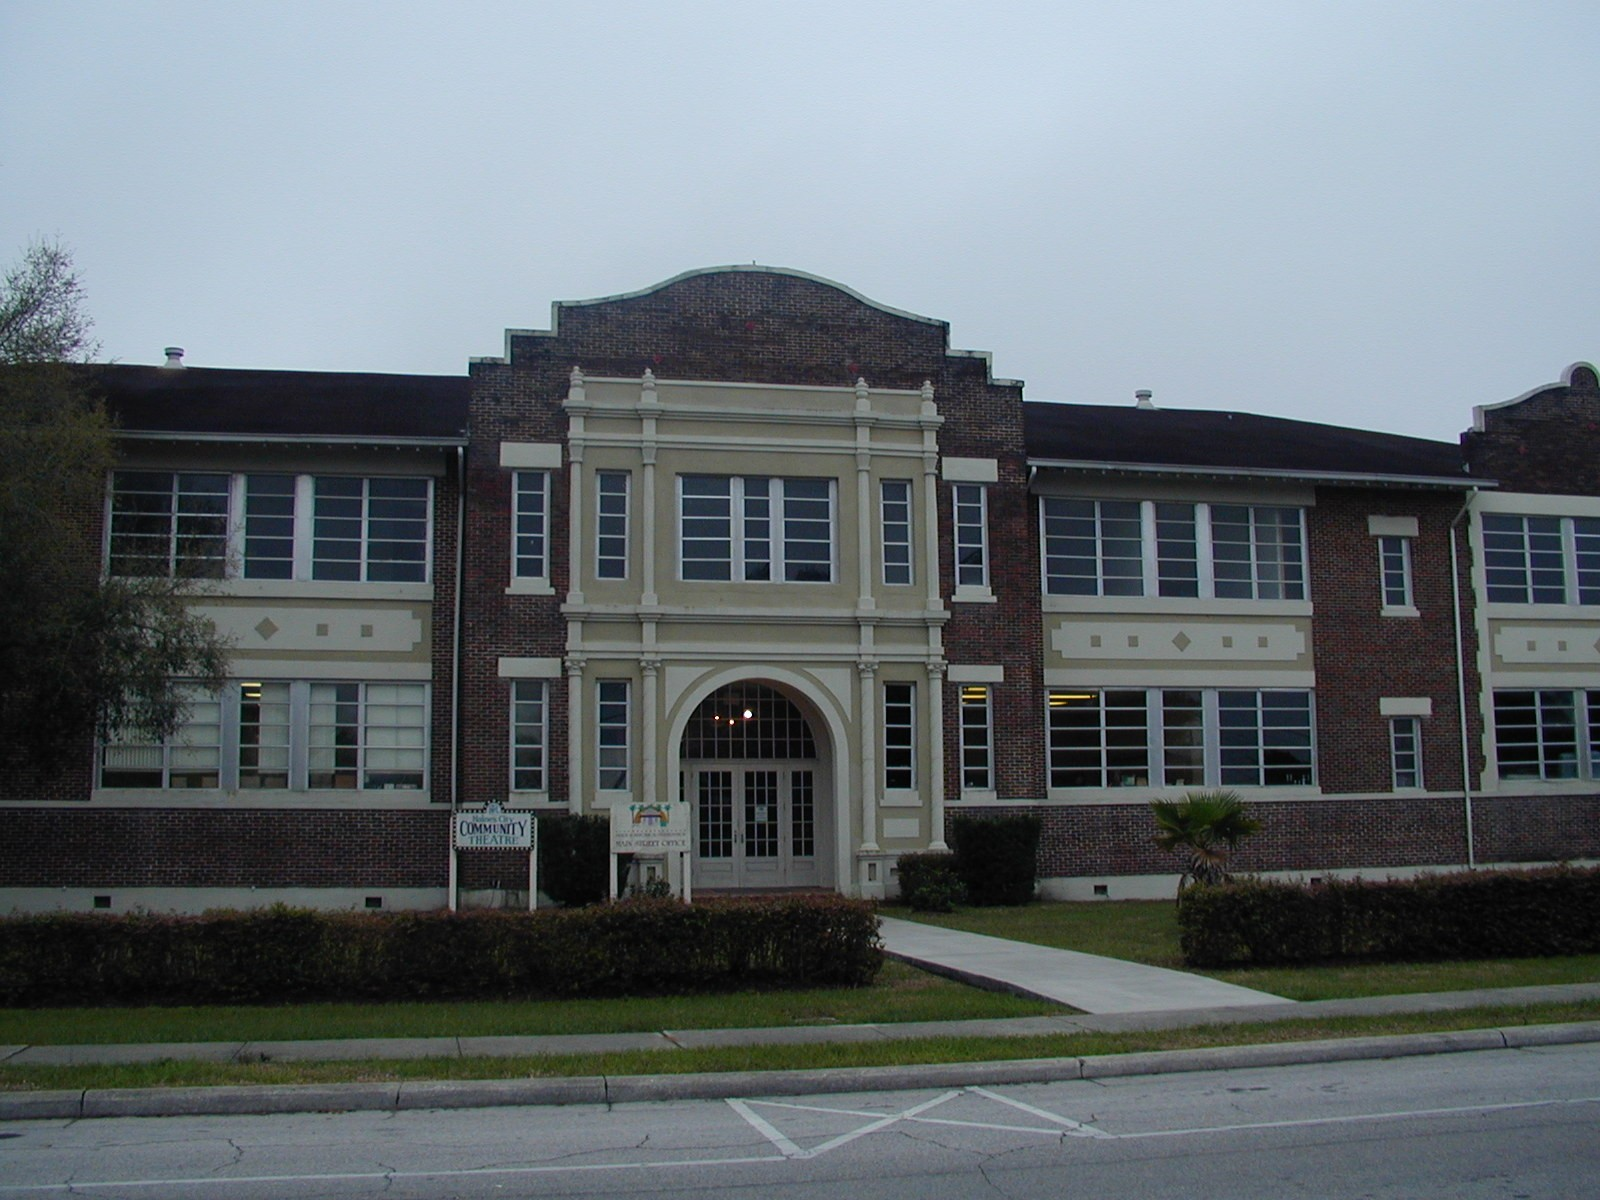 Haines City Community Center